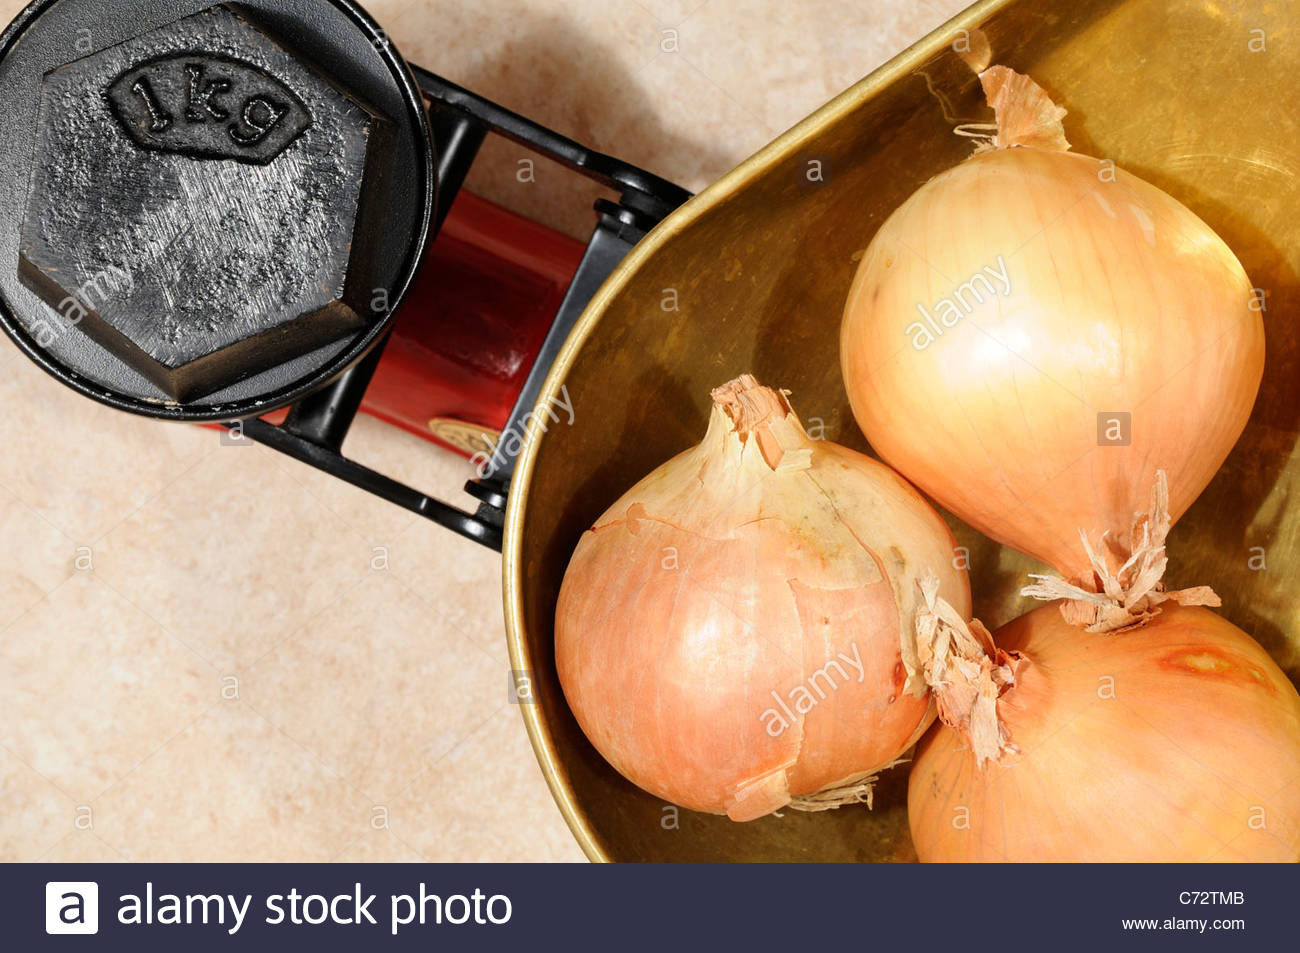 Onions on Kitchen scales 1kg, England Stock Photo